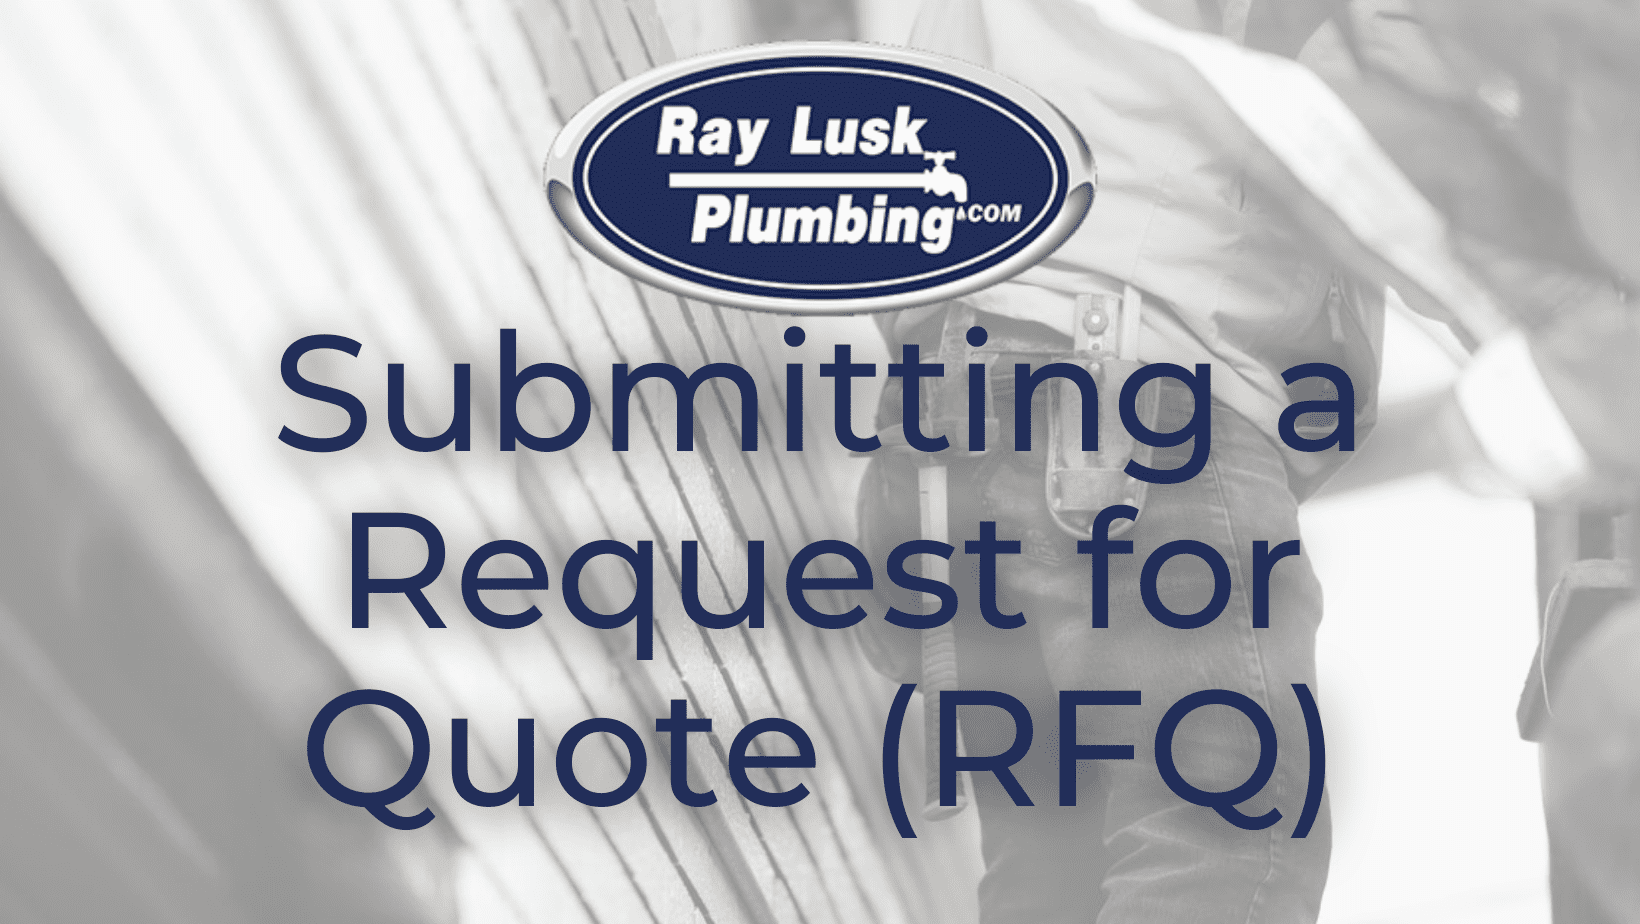 Image text reads: Submitting a Request for Quote RFQ